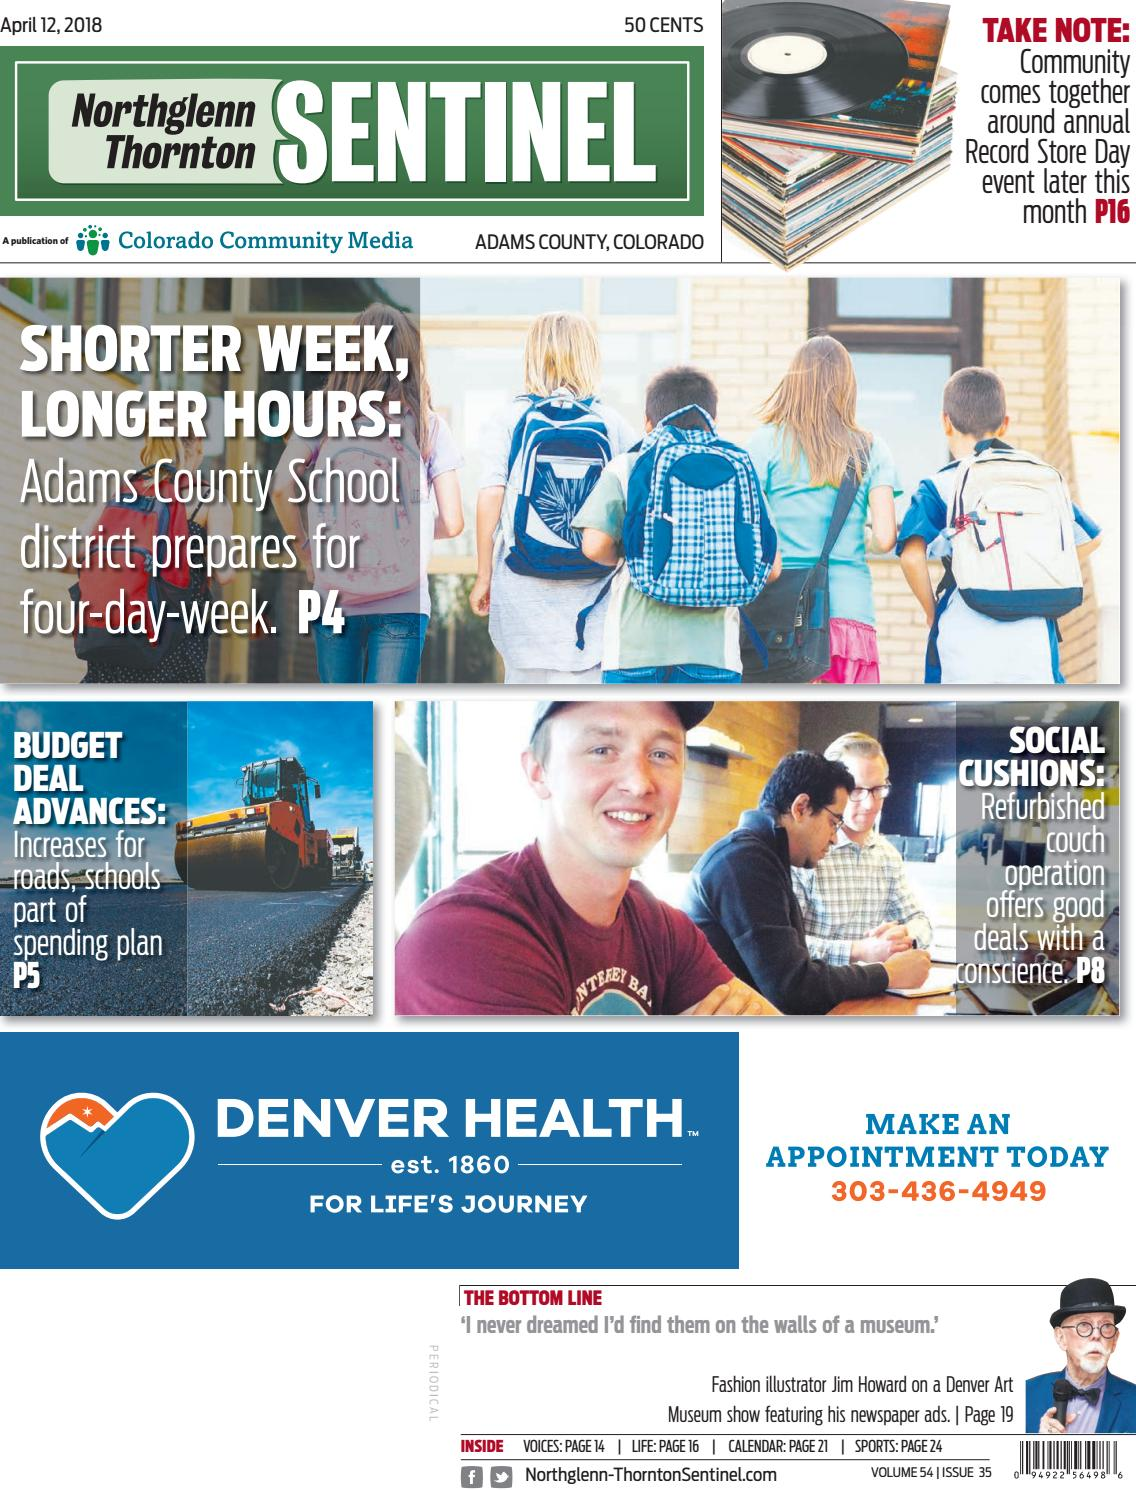 Northglenn Thornton Sentinel 0412 by Colorado Community Media - issuu